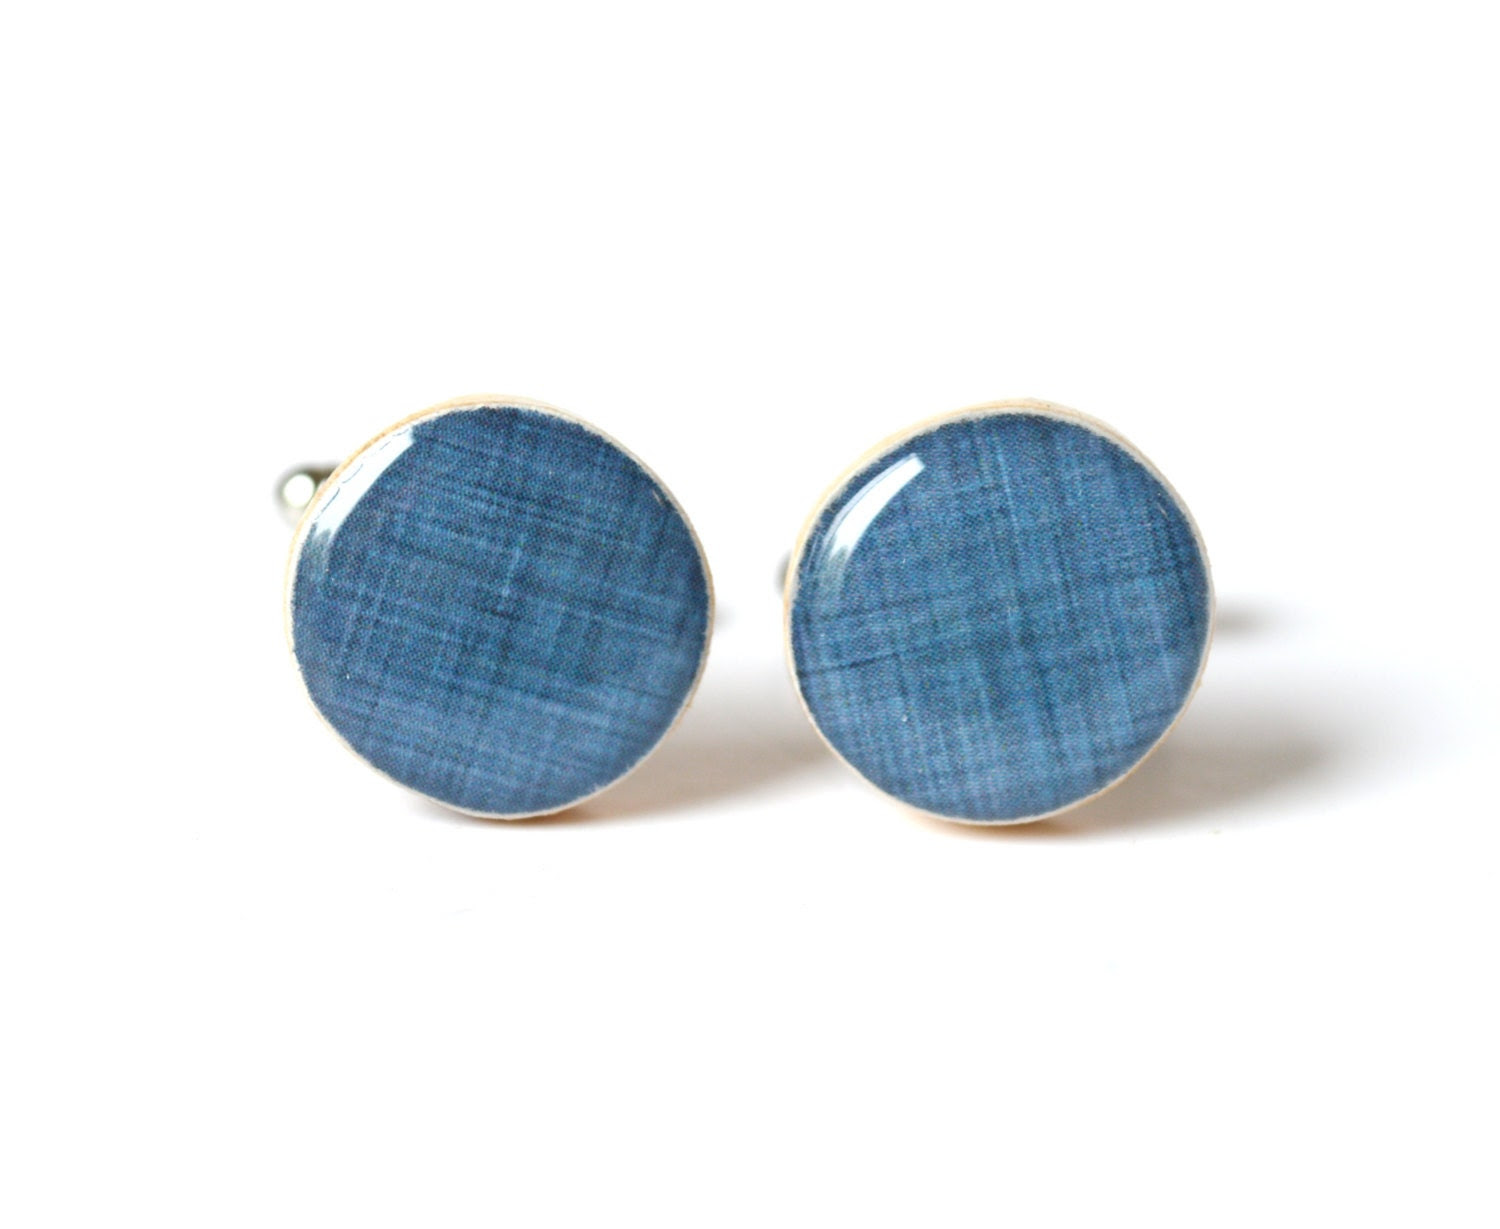 Denim blue cufflinks wood cuff links fathers day gift for dad wedding eco friendly mens accessory gift for men - starlightwoods